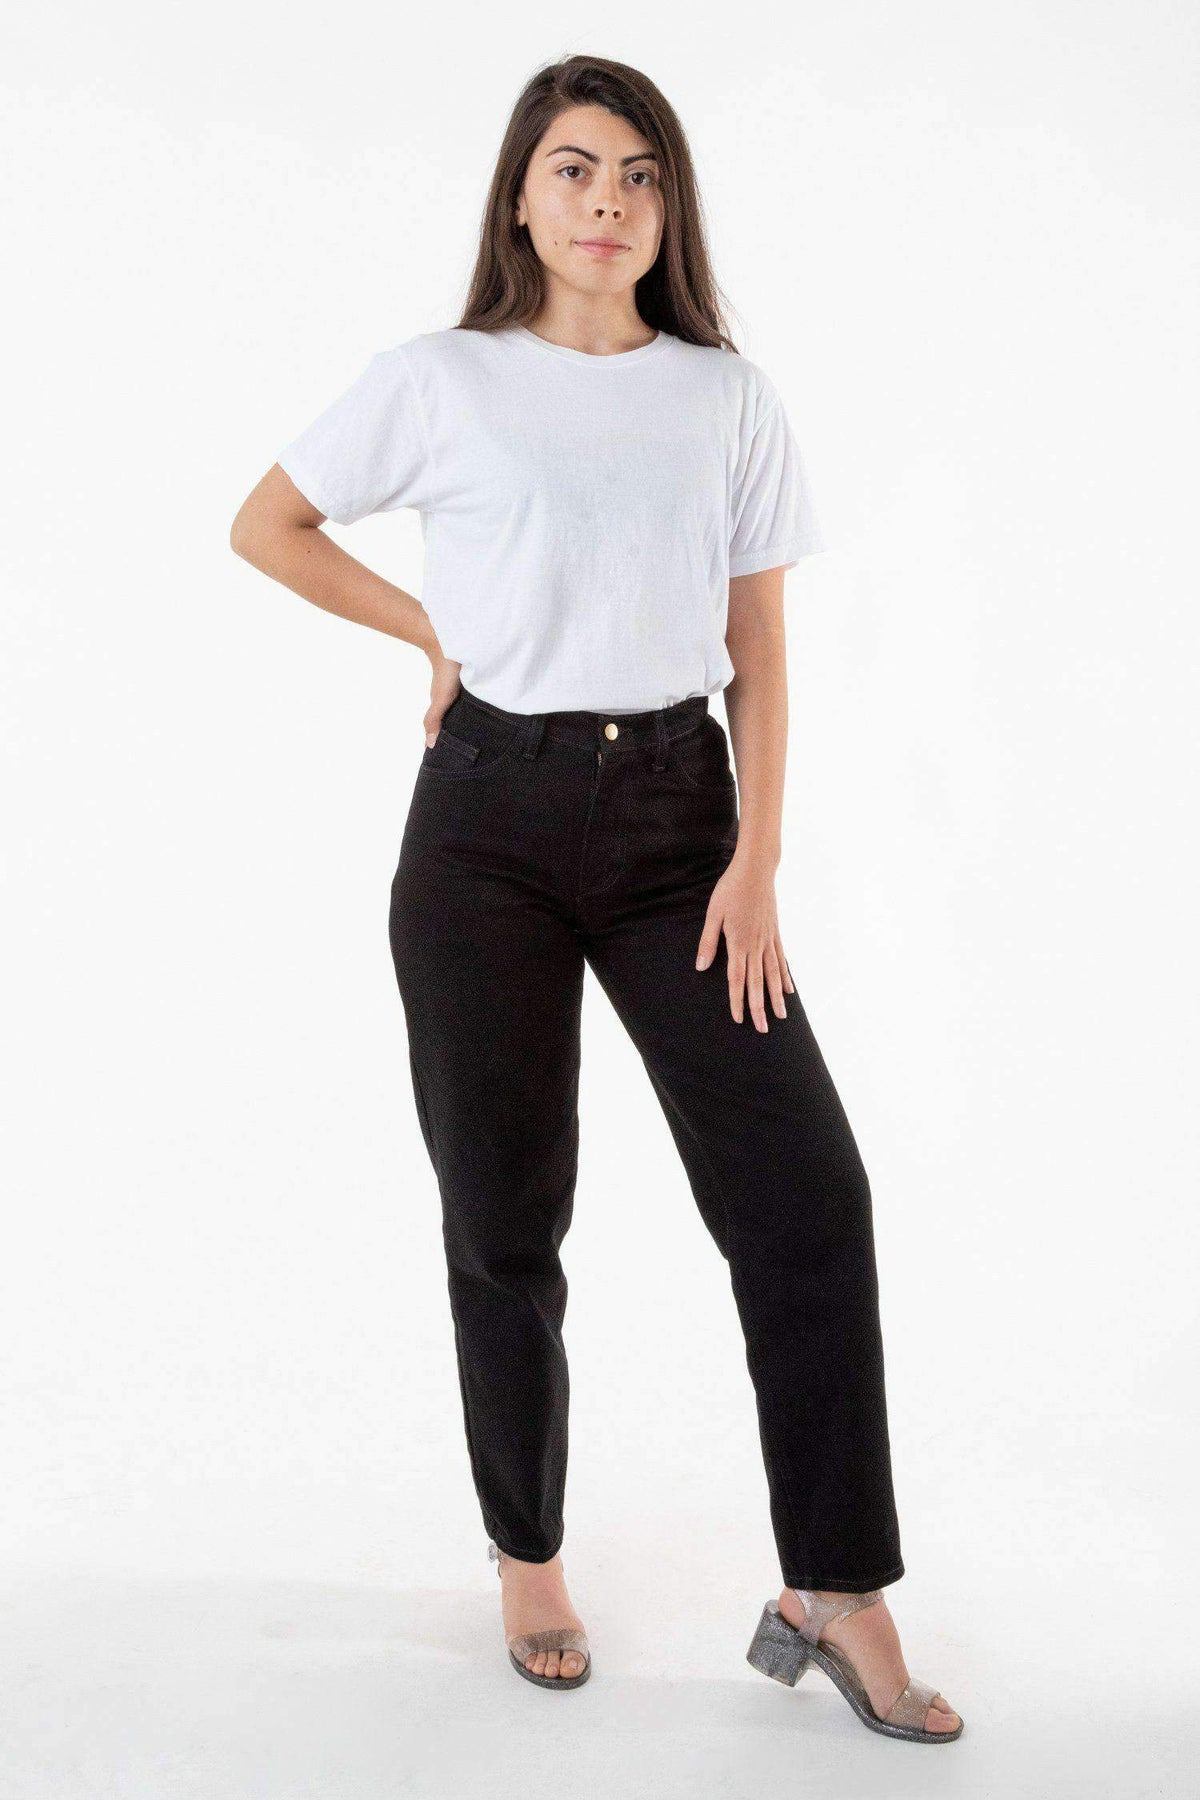 RDNW01 - Women's Relaxed Fit Jeans Black Jeans Los Angeles Apparel Black 24/28